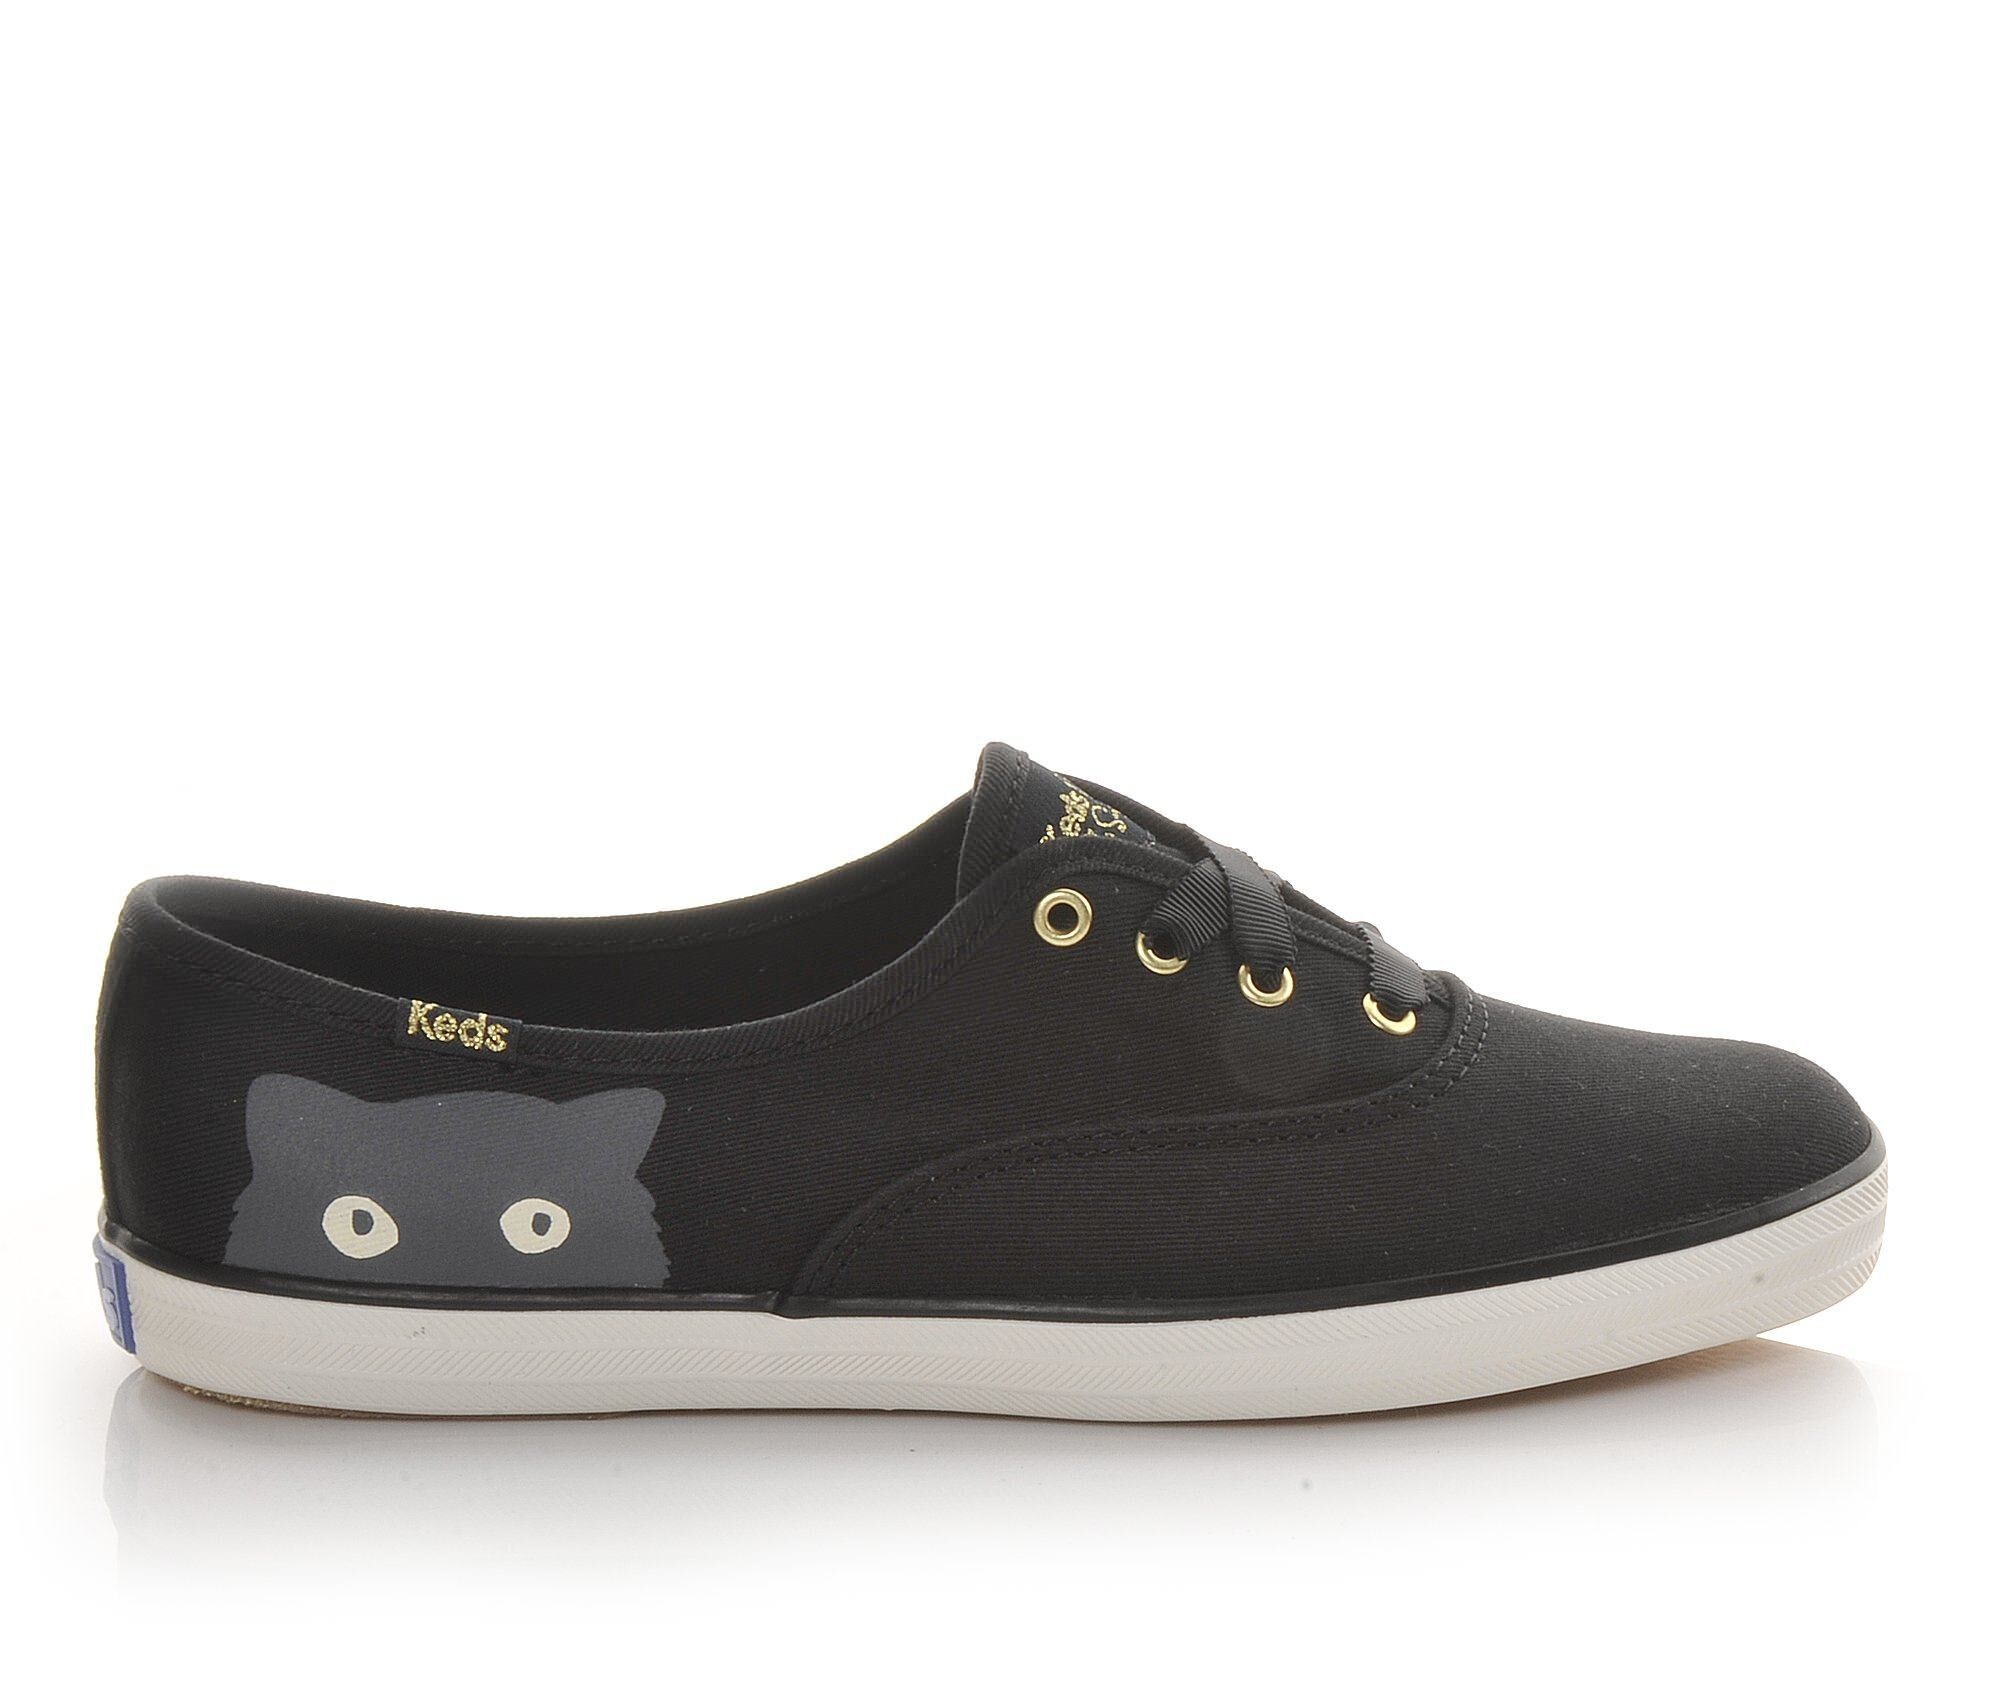 Keds Shoes Keds Taylor Swift Sneaky Cat Womens Loafers Black/Grey